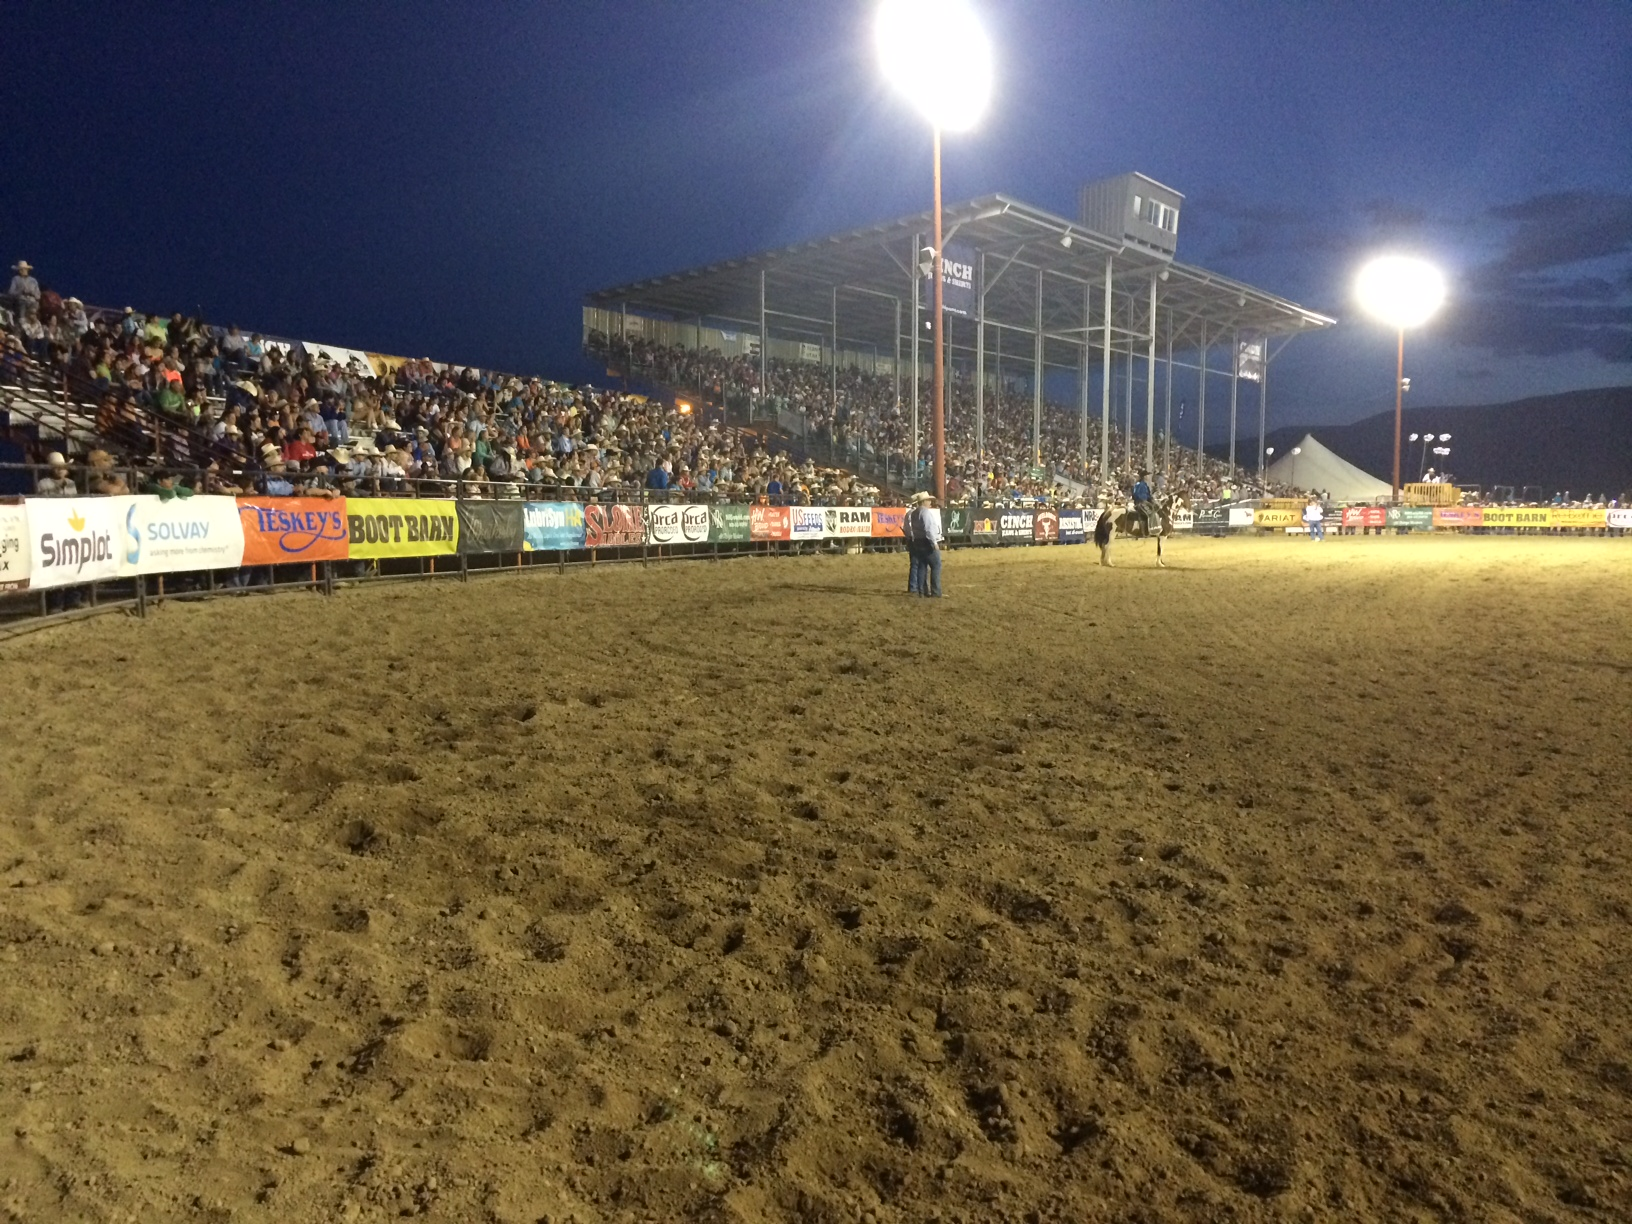 I figured I should throw in a picture of the crowd at the first performance.  By contestants, this is the largest outdoor rodeo in the country and the majority of the spectators are family and friends.  What a great chance we have to minister to the whole family!